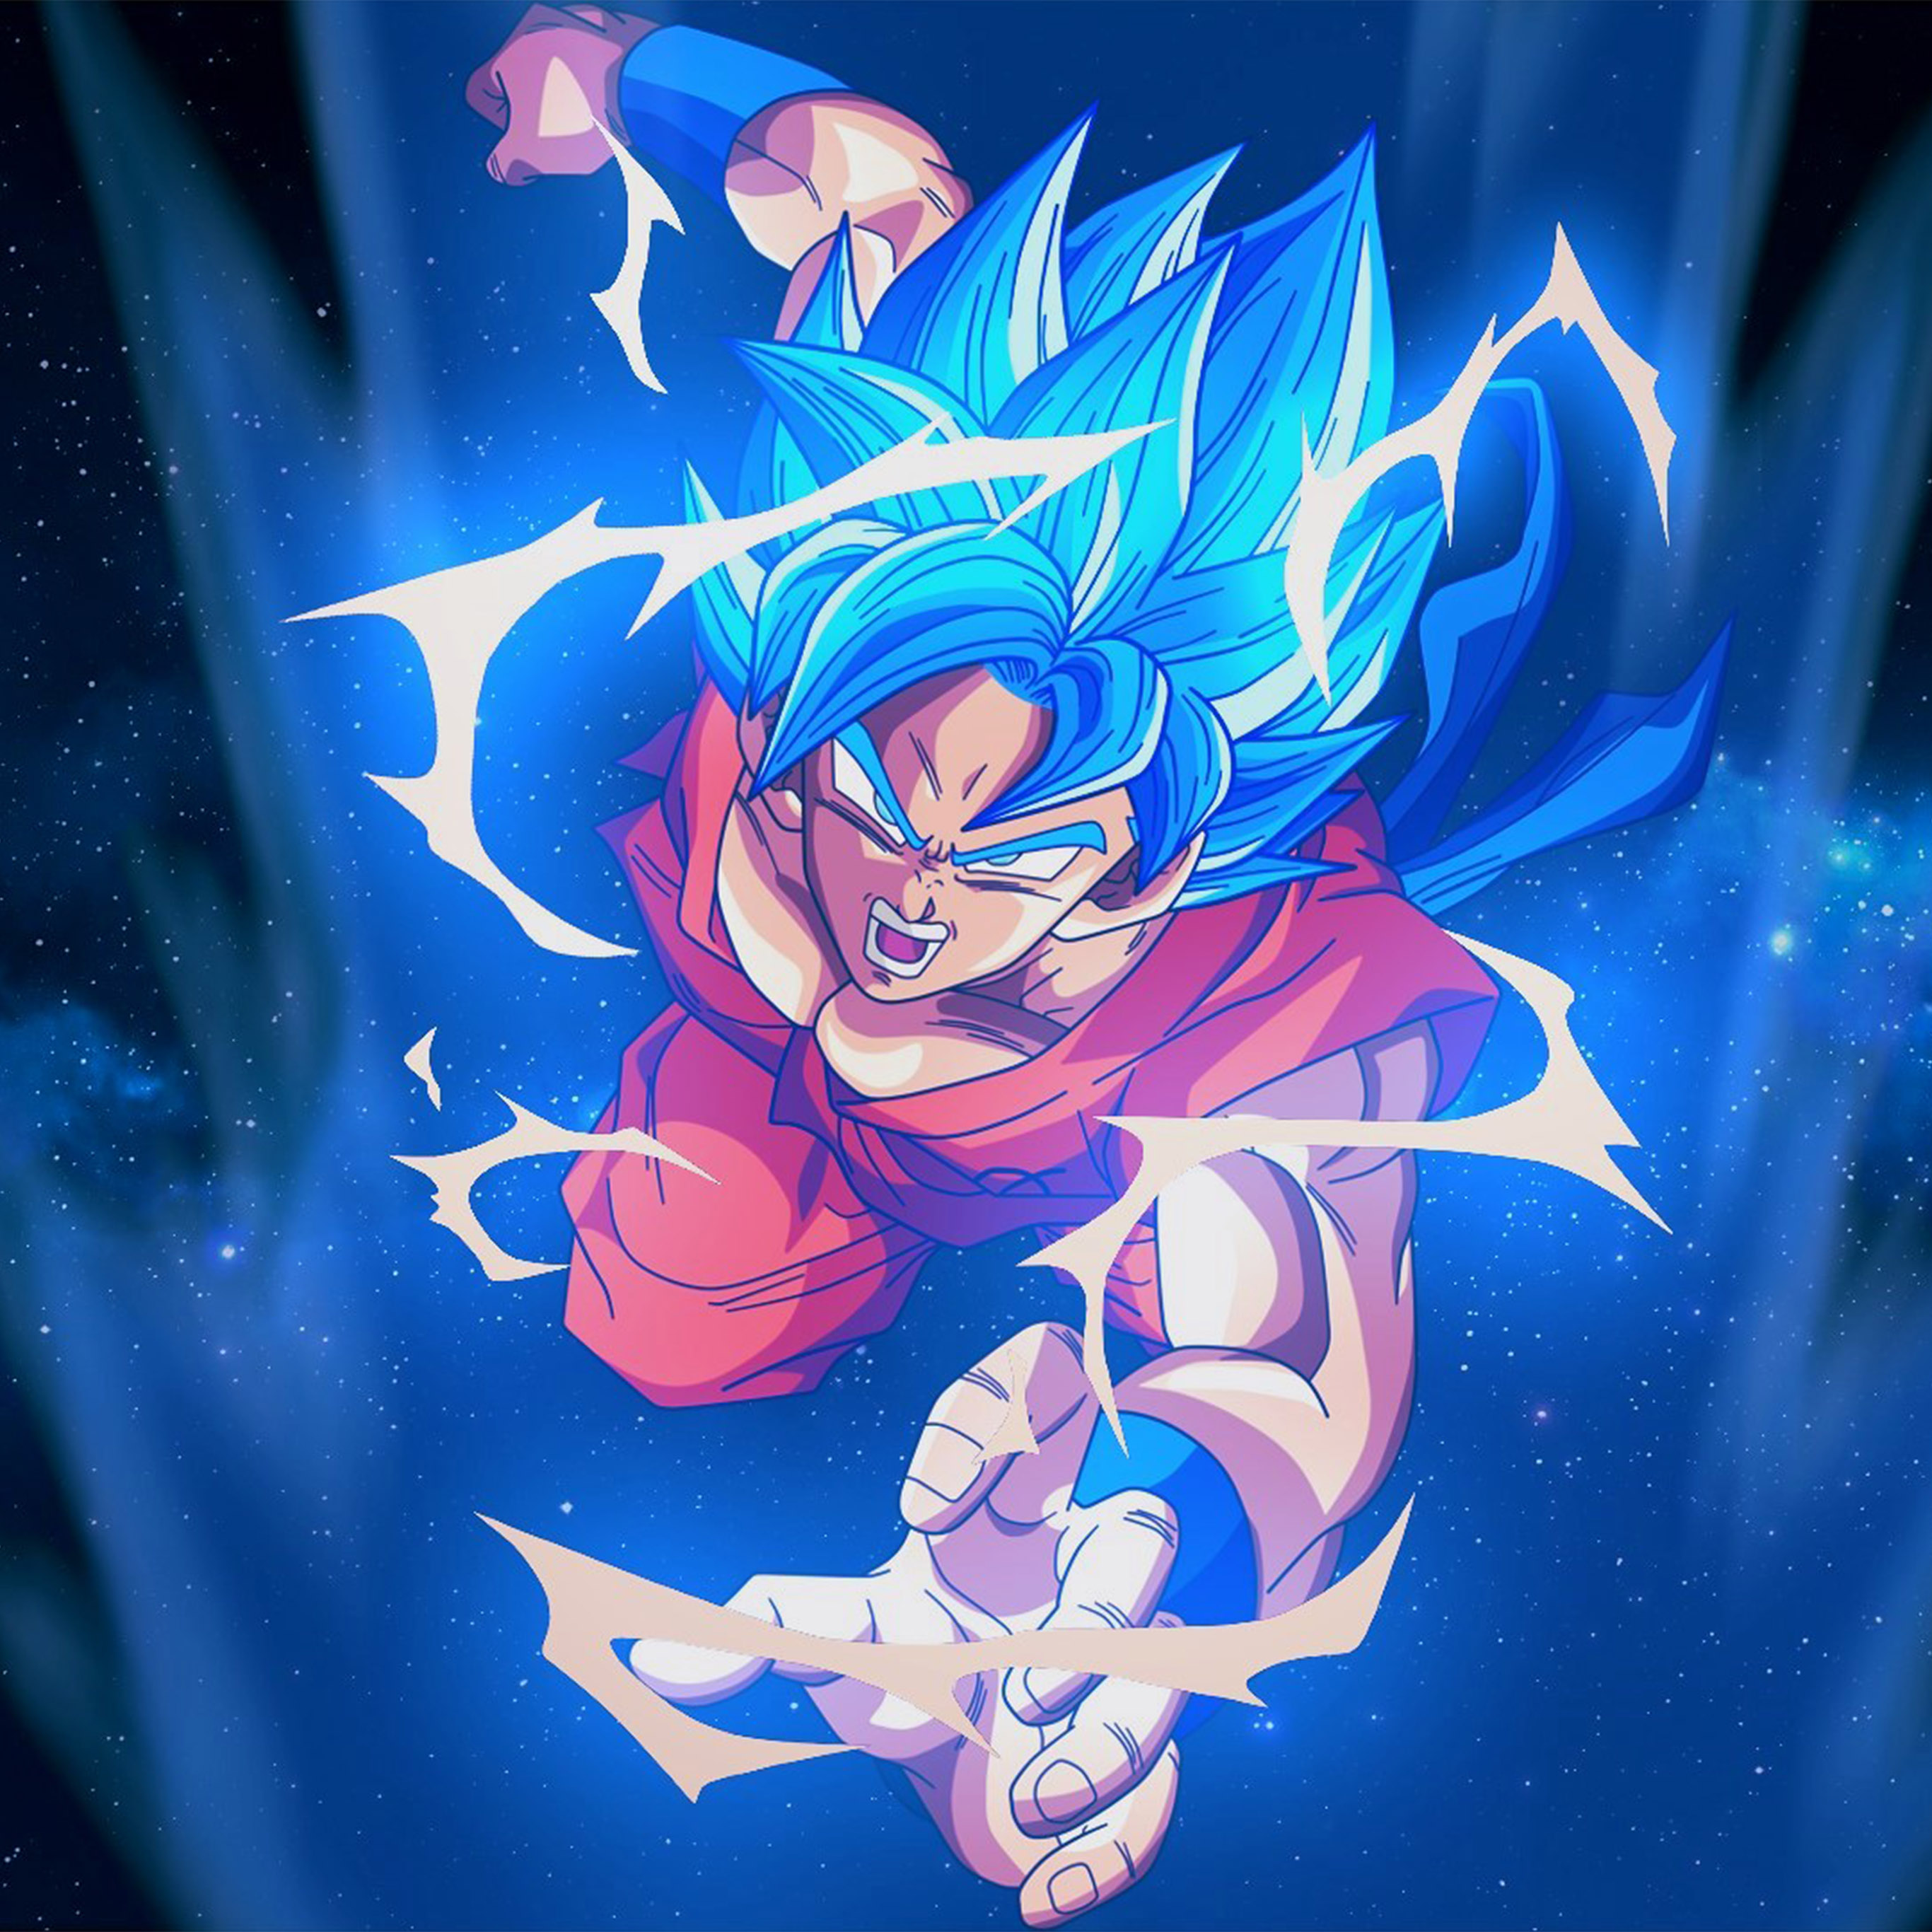 3d Wallpaper For Iphone Se Bc54 Dragonball Goku Blue Art Illustration Anime Wallpaper